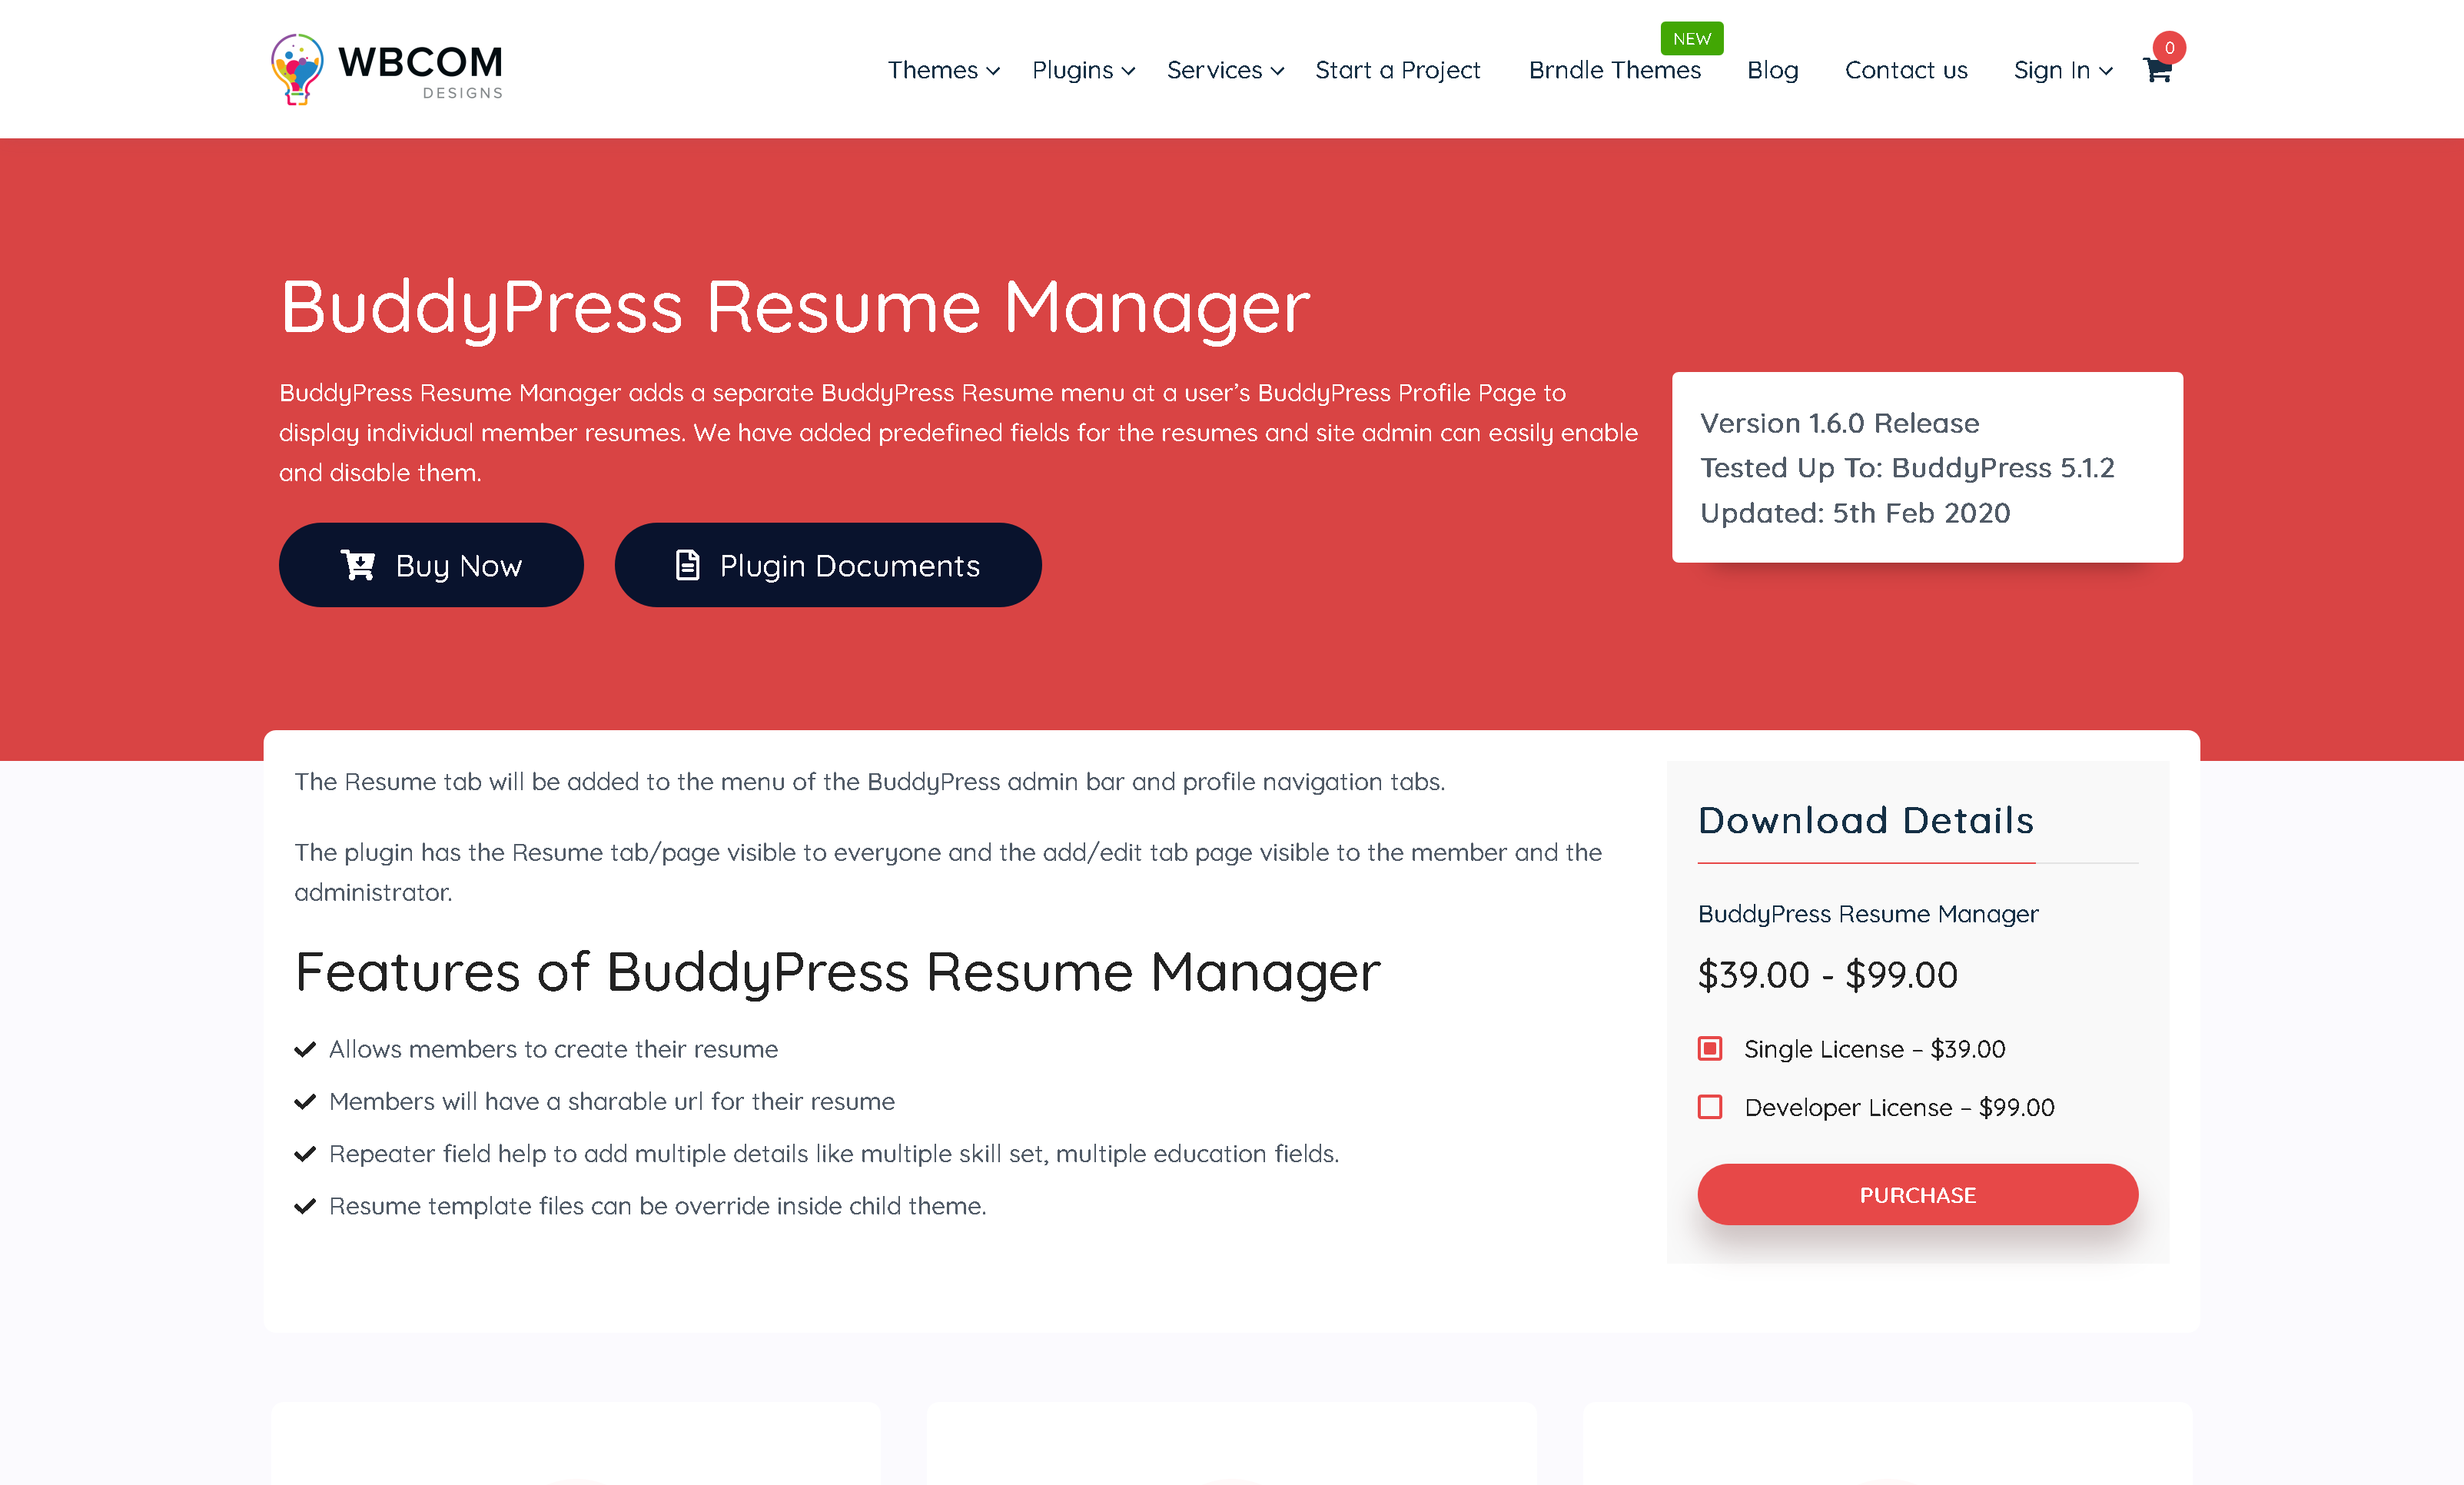 BuddyPress Resume Manager 1.4.0 – Wbcom Designs WordPress Plugin